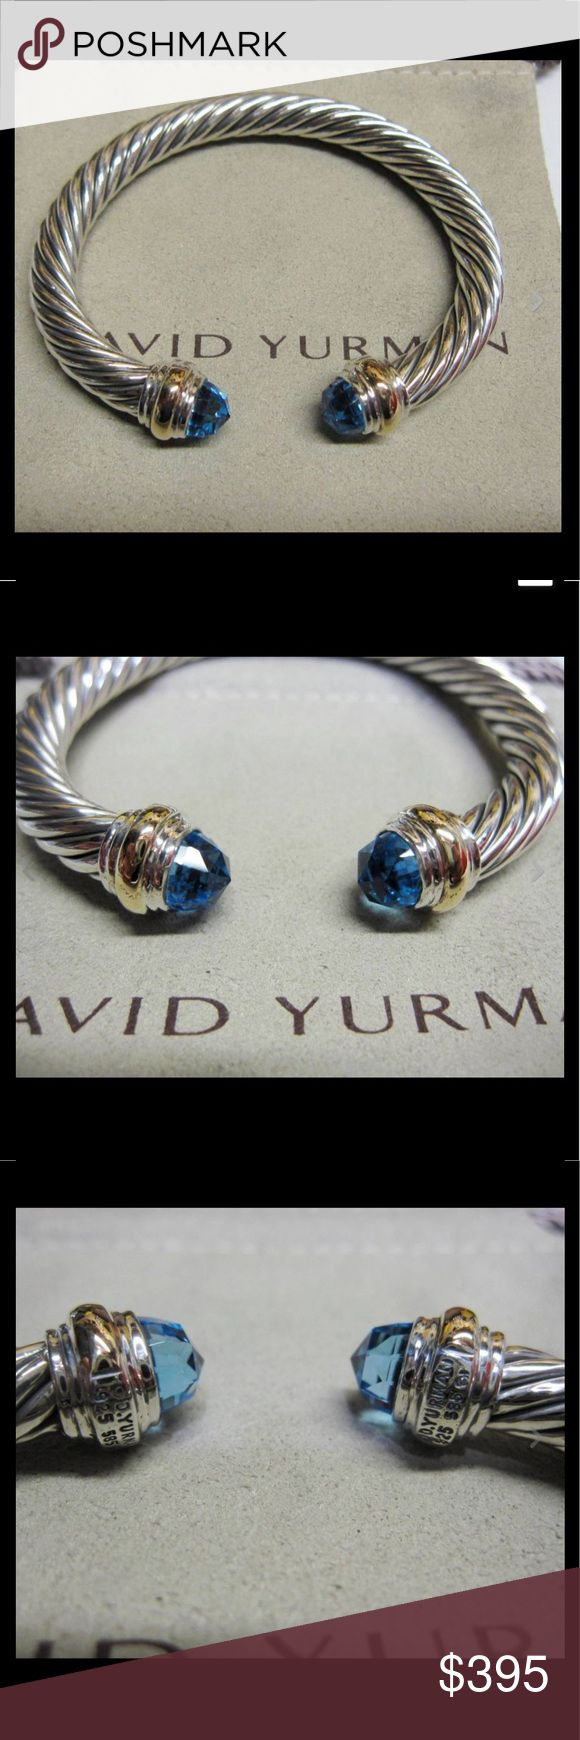 "David Yurman 7mm Blue Topaz Cable Bracelet David Yurman 7mm Blue Topaz Cable Bracelet from the Color Classics Collection  Brand New 7mm Sterling Silver Cable Faceted Blue Topaz Gemstones Hallmarked DY 925 585 Retails for $775 Medium Size: Measures 2 1/4"" across. Fits wrists up to 7"" Comes with the Yurman Pouch Free Shipping David Yurman Jewelry Bracelets"